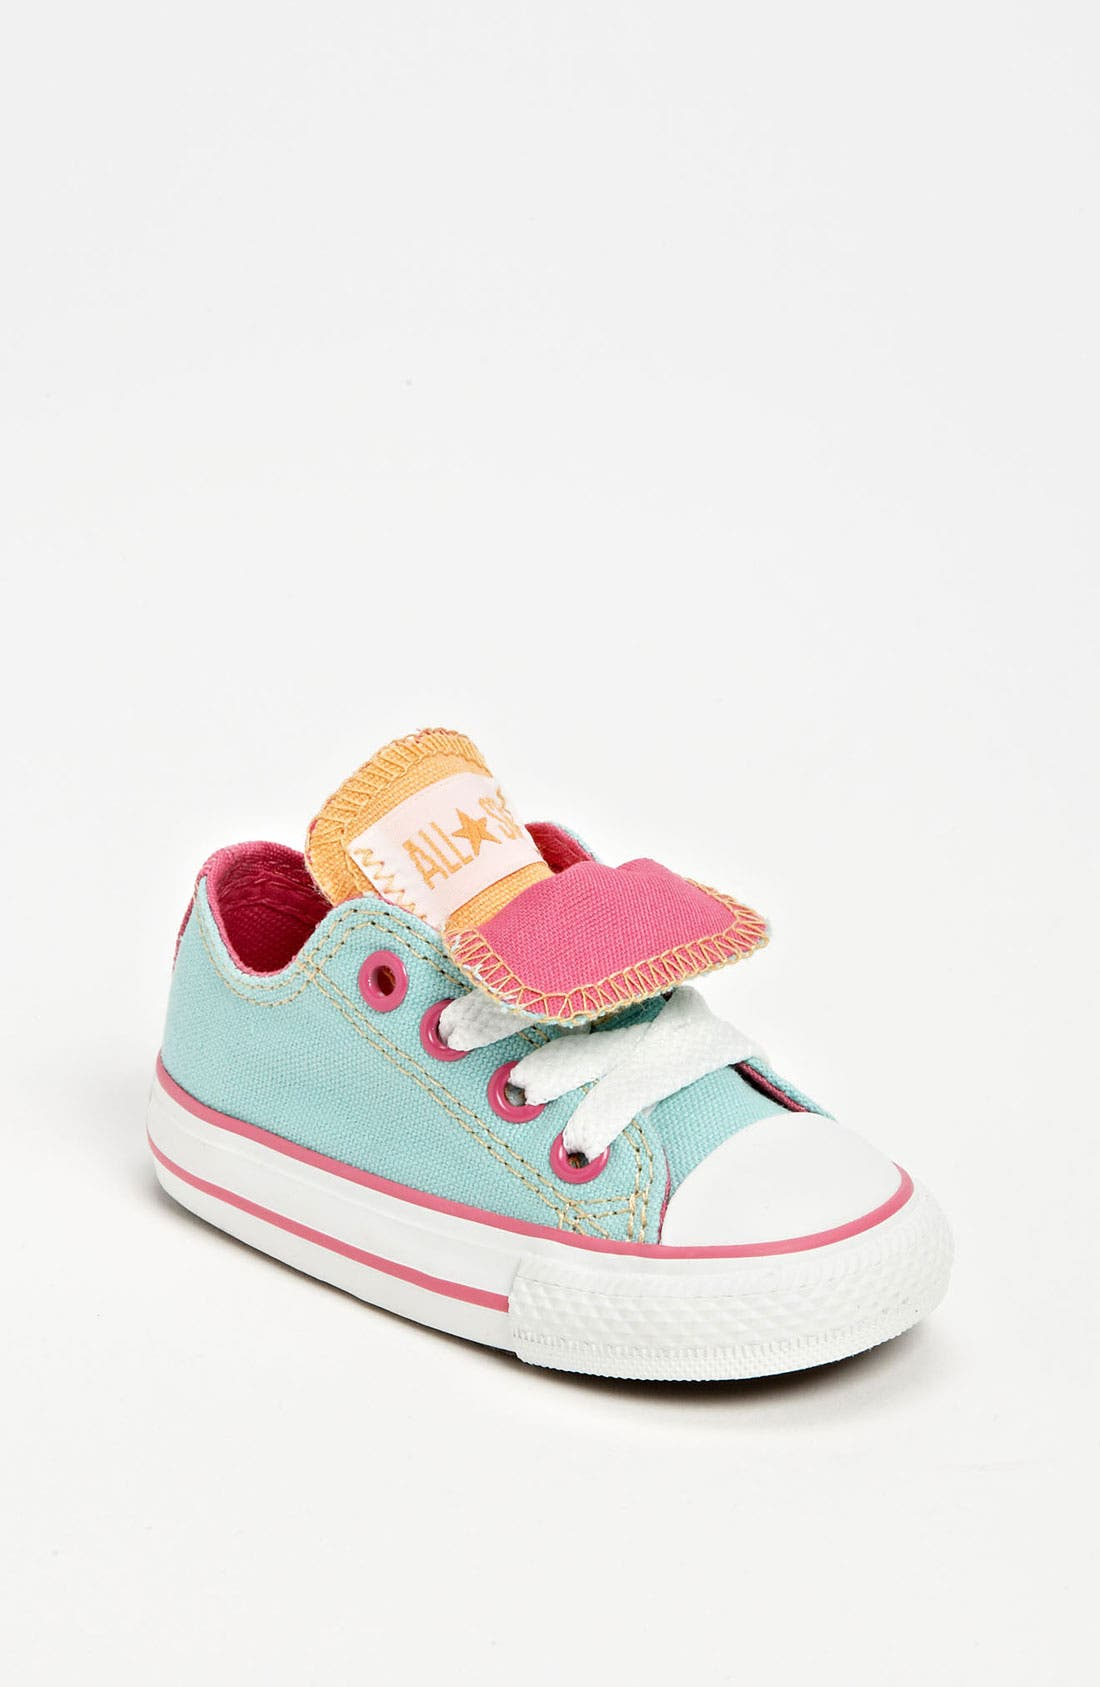 Alternate Image 1 Selected - Converse Chuck Taylor® Double Tongue Sneaker (Baby, Walker & Toddler)